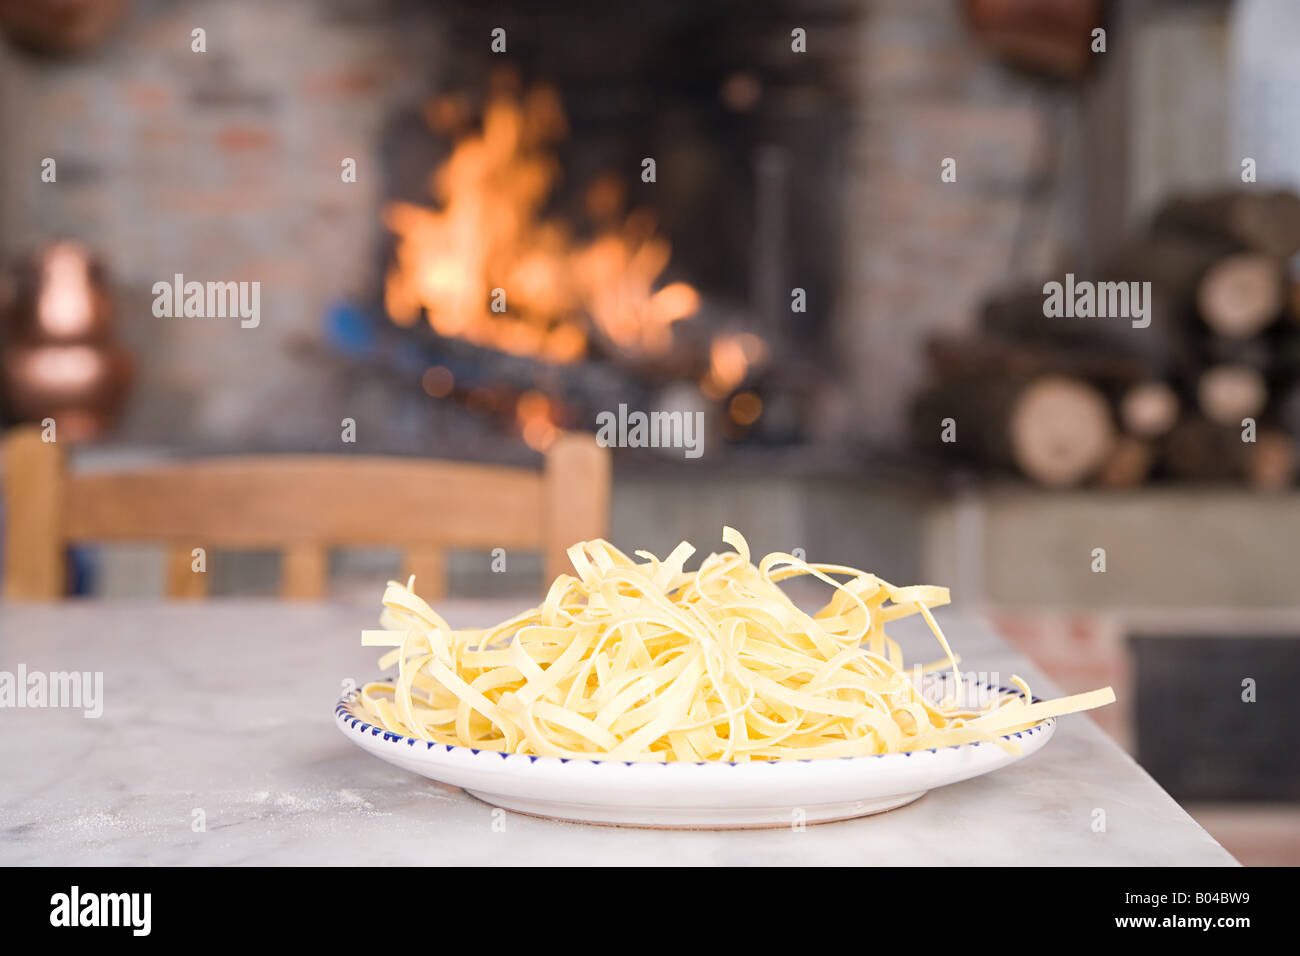 Spaghetti on a plate - Stock Image